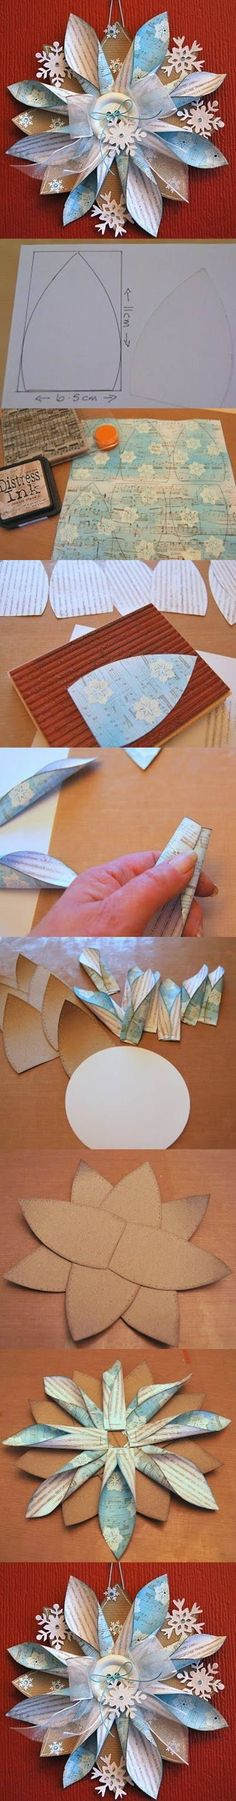 DIY Paper Flower Ornaments DIY Projects